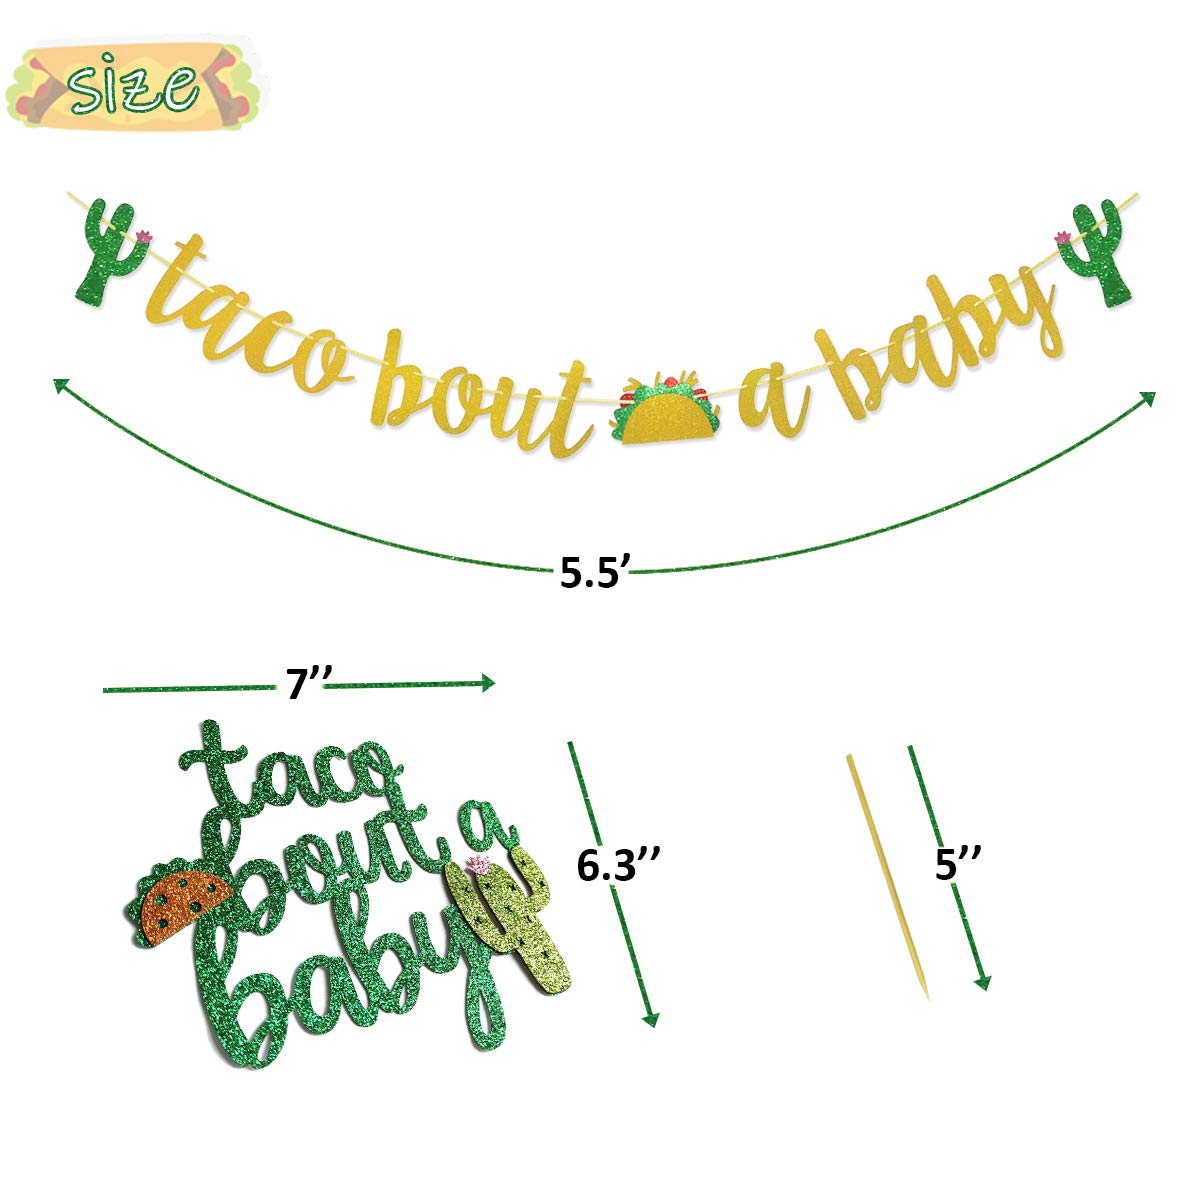 Finseng Taco Bout A Baby Gold Glitter Banner Sign Garland for Mexican Fiesta Themed Baby Shower Decorations by Glamoncha (Image #2)